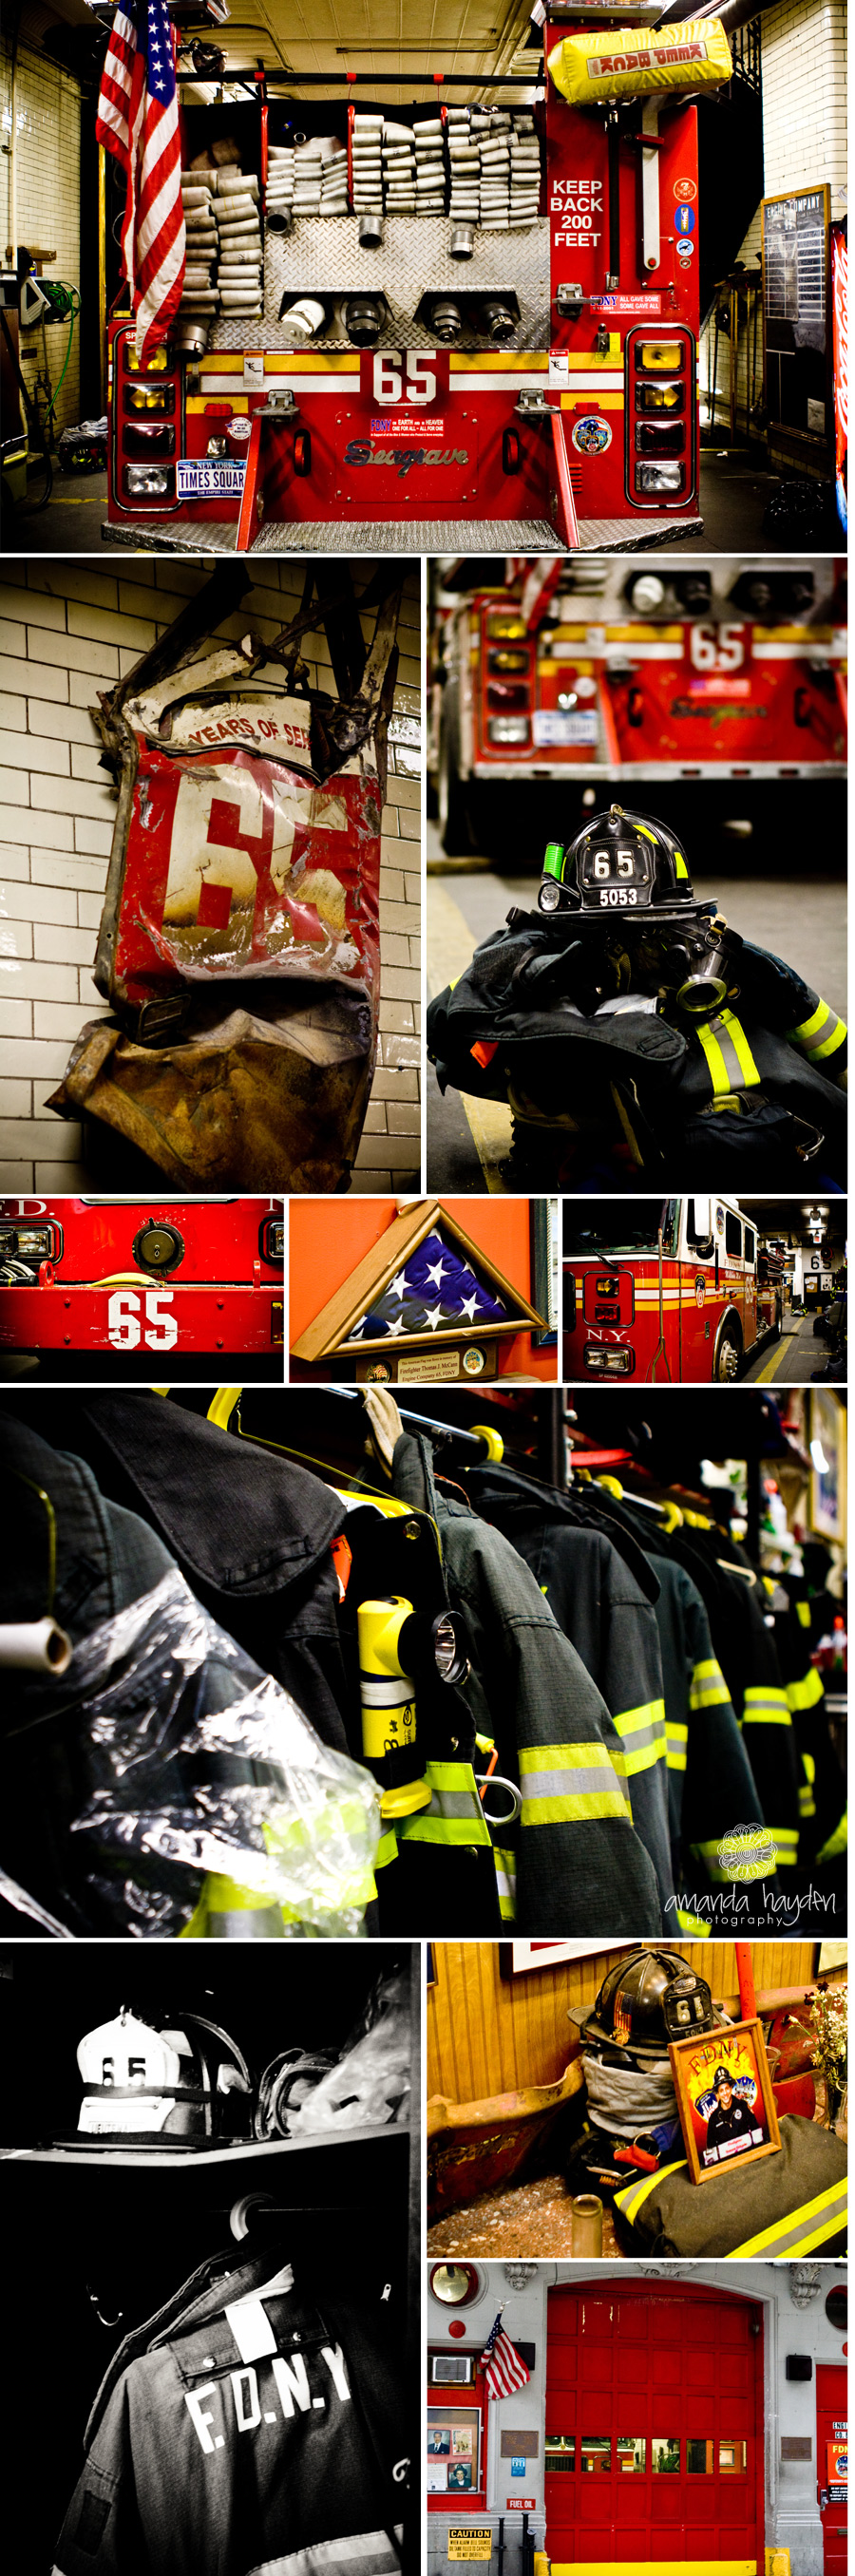 Remember 9/11 NYC Fire House 65